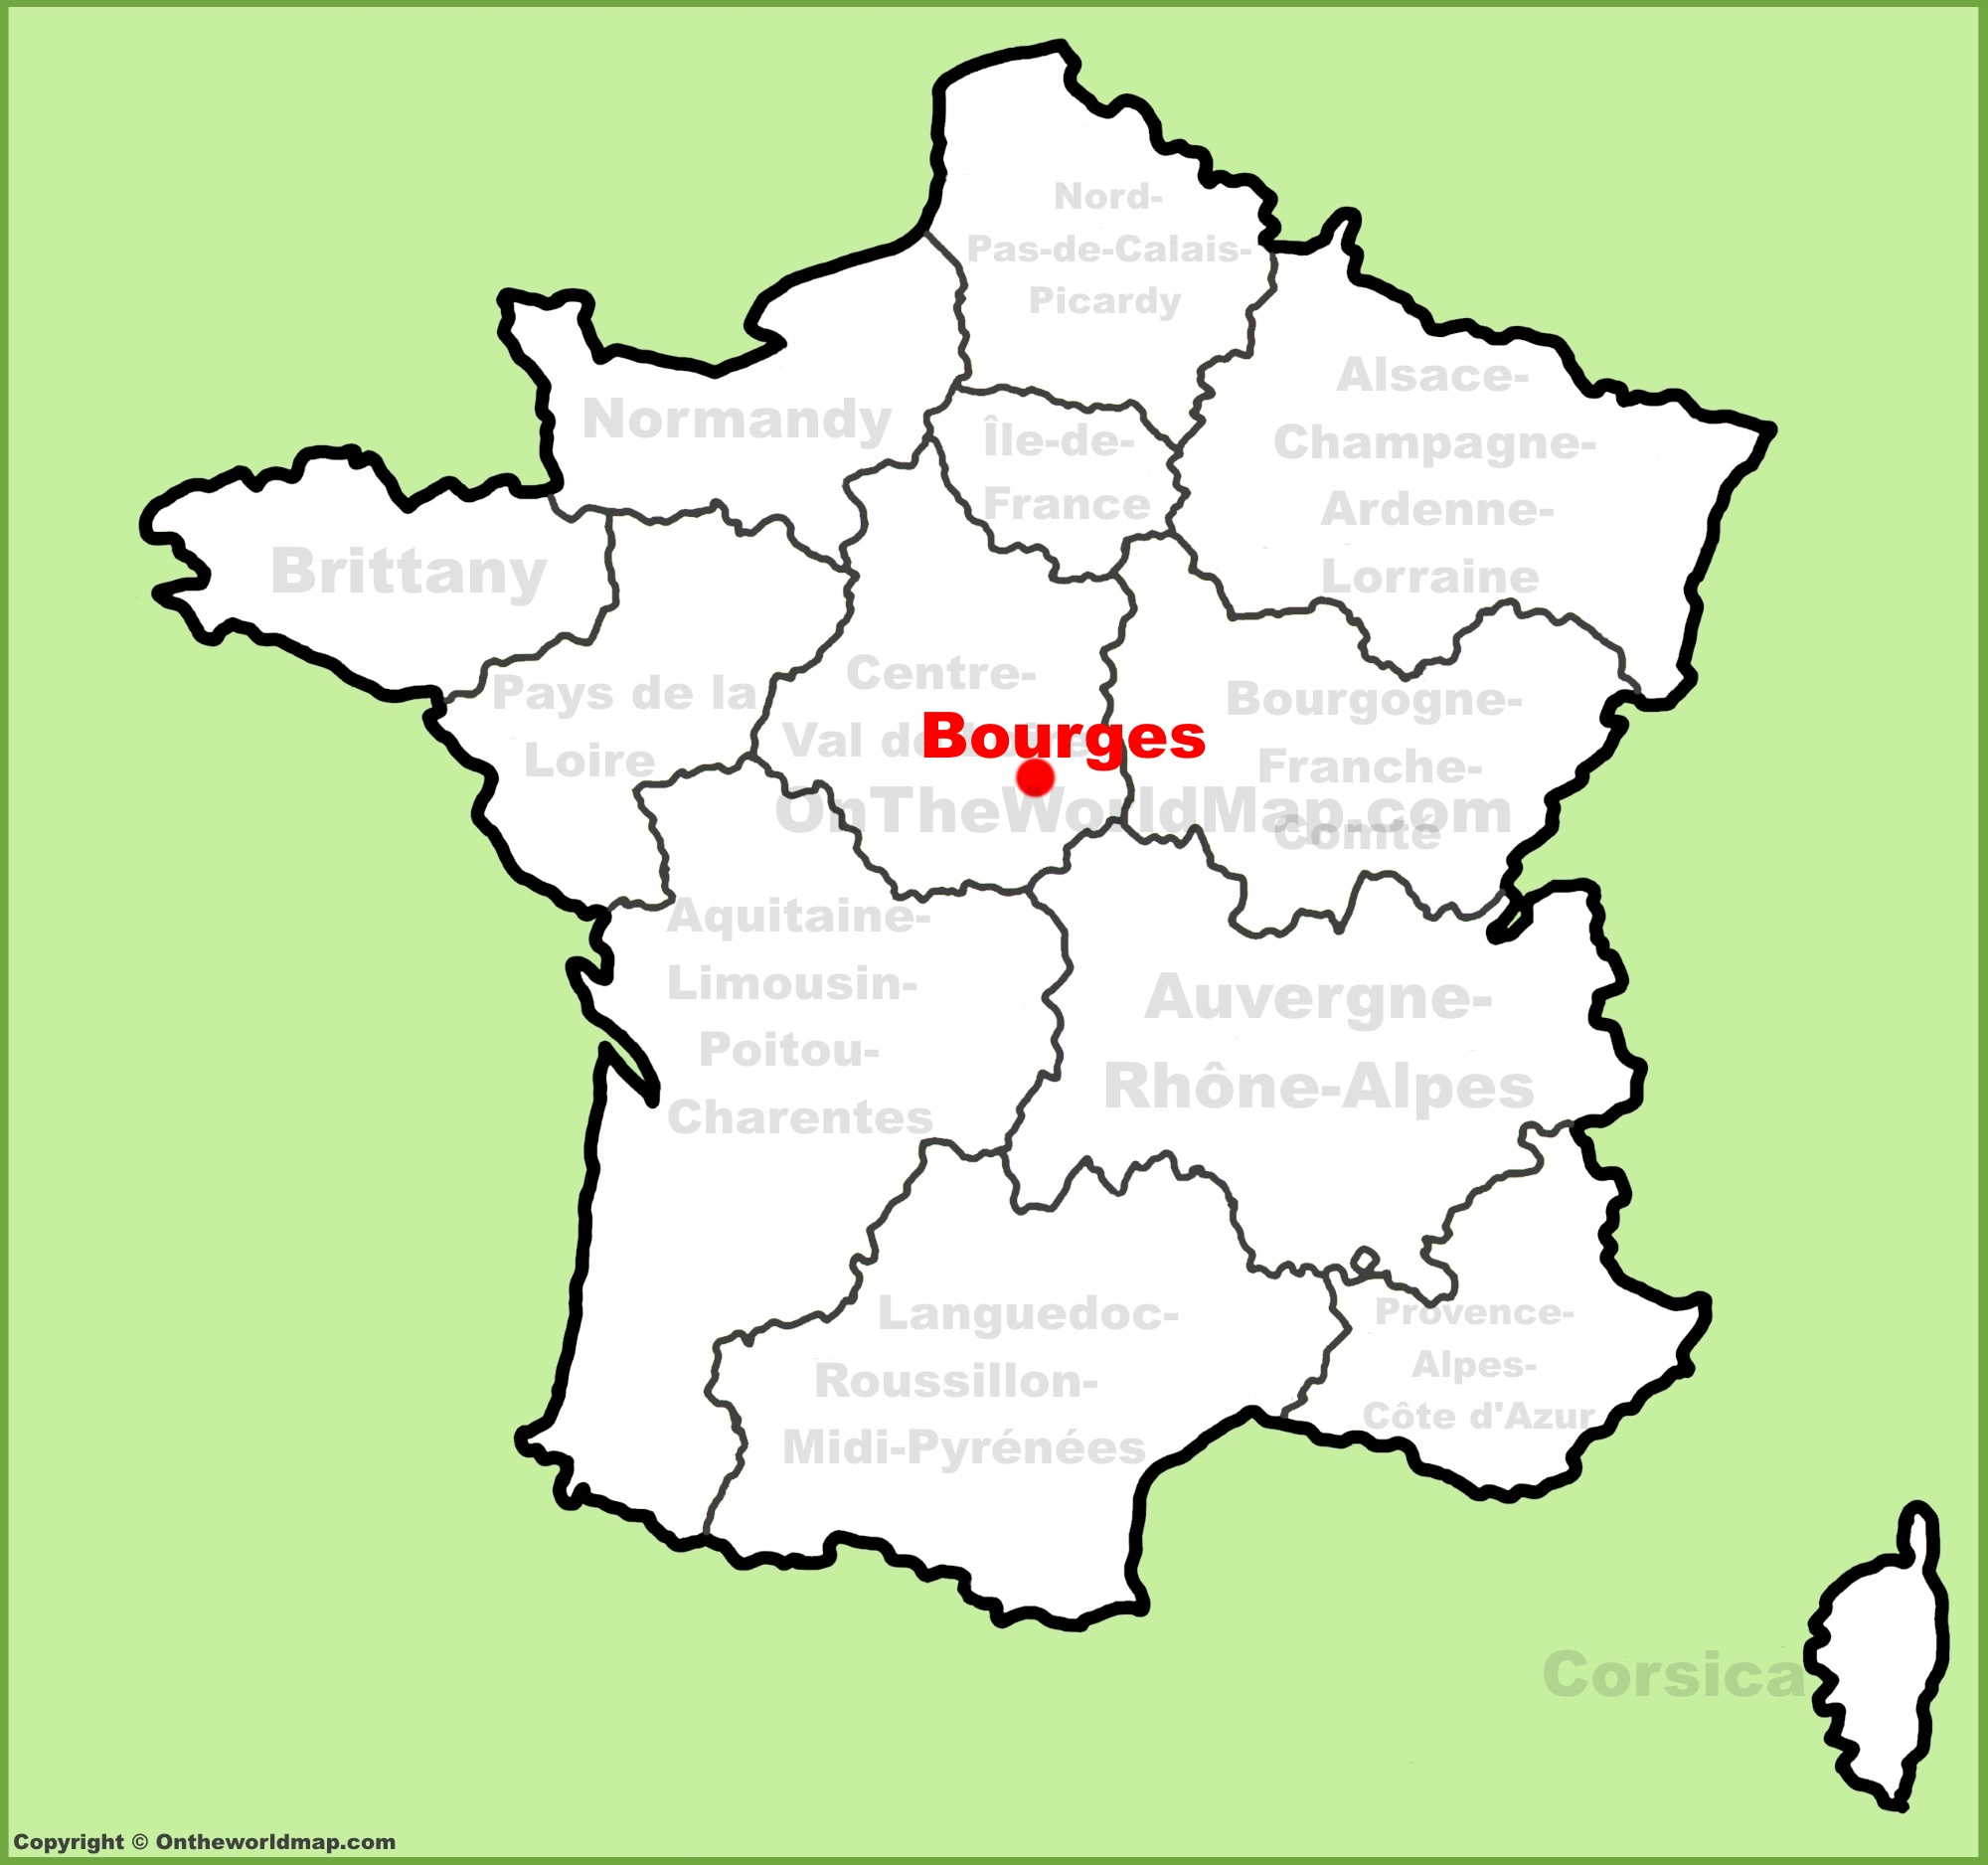 Bourges location on the France map